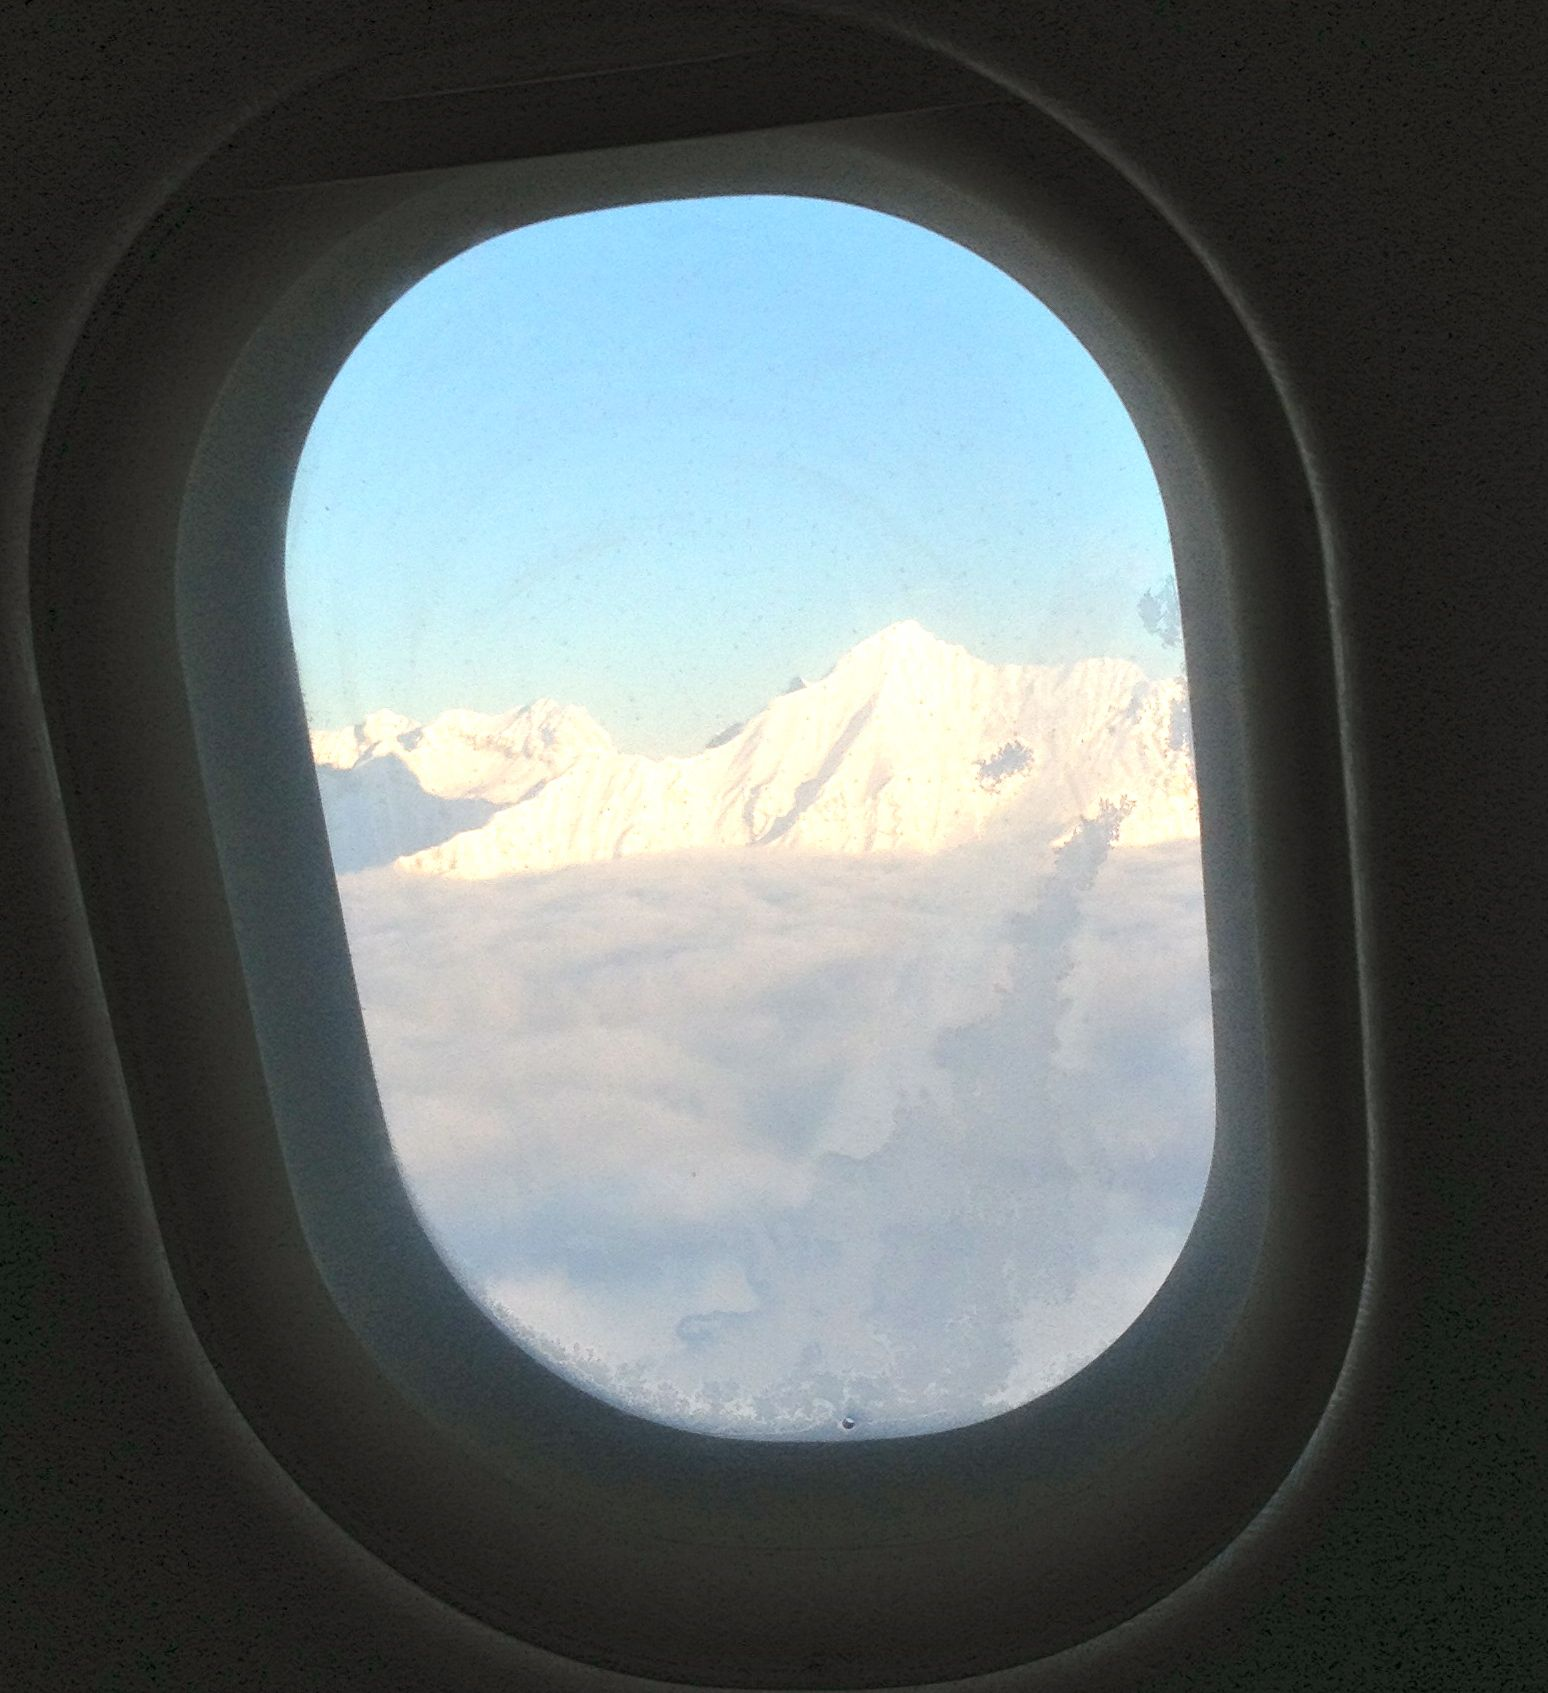 on the way to Innsbruck